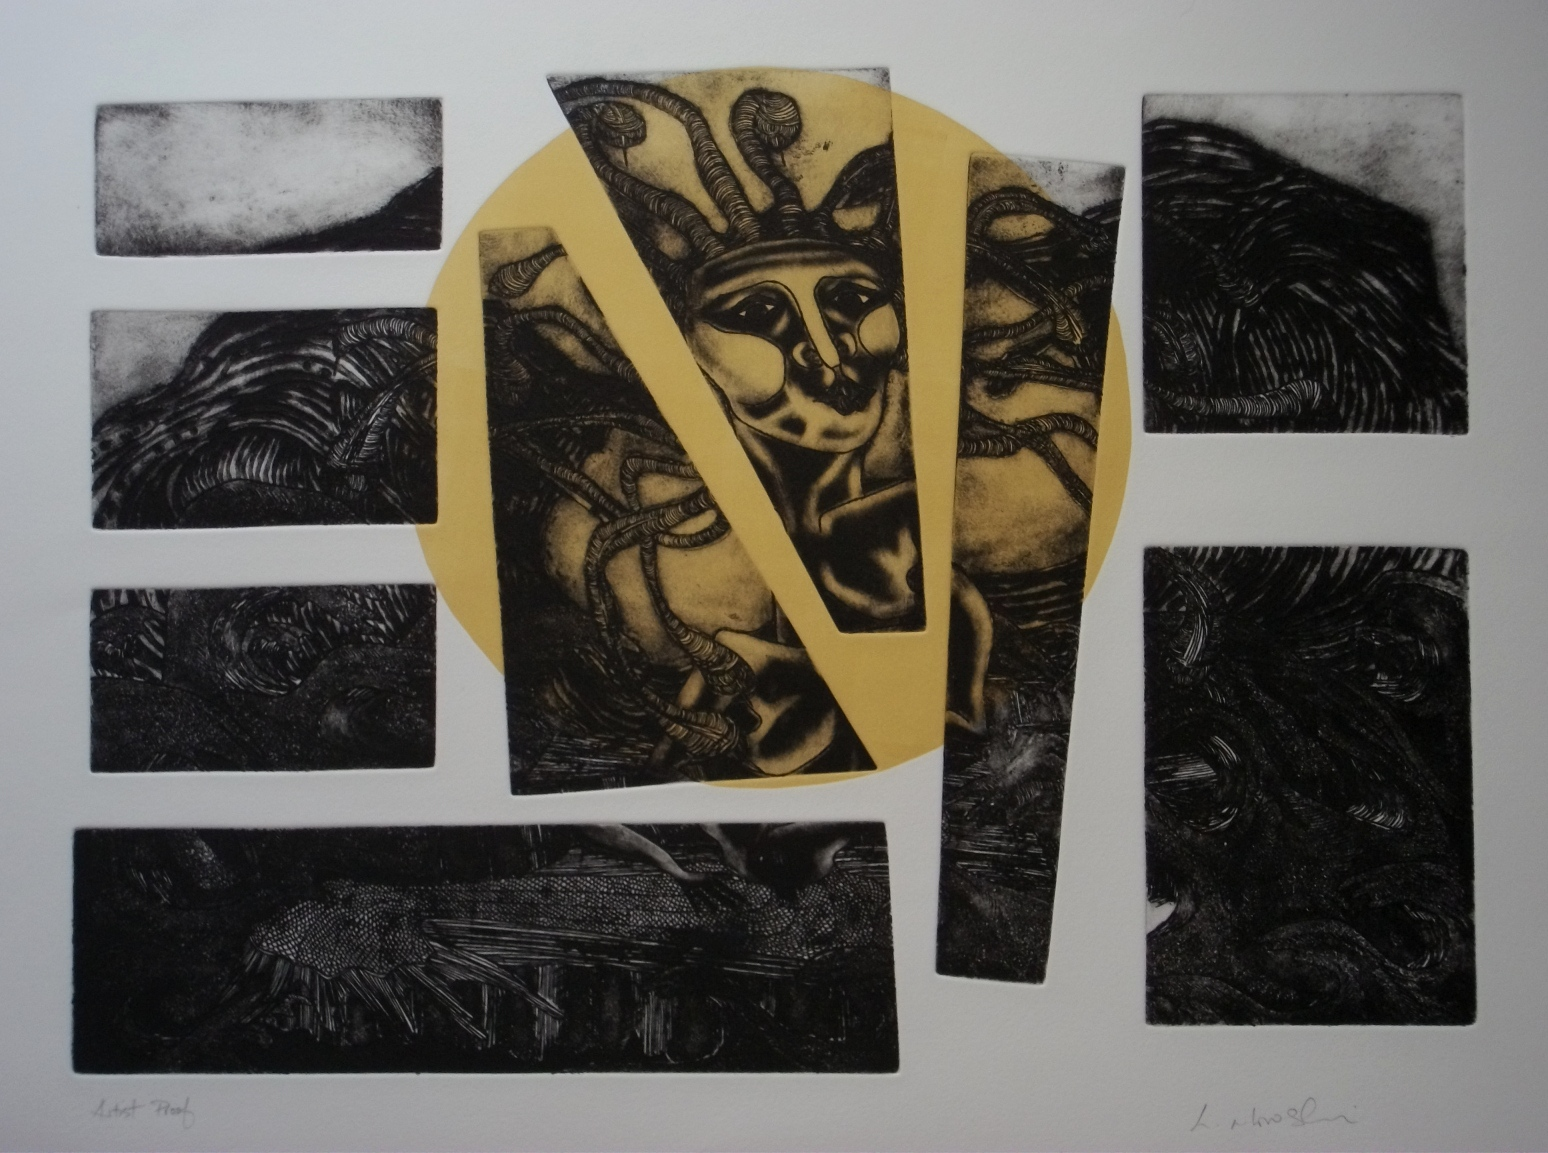 Fragmented-Medusa-etching-and-relief-colour-390-x-540, by the artist Helena Orlowski